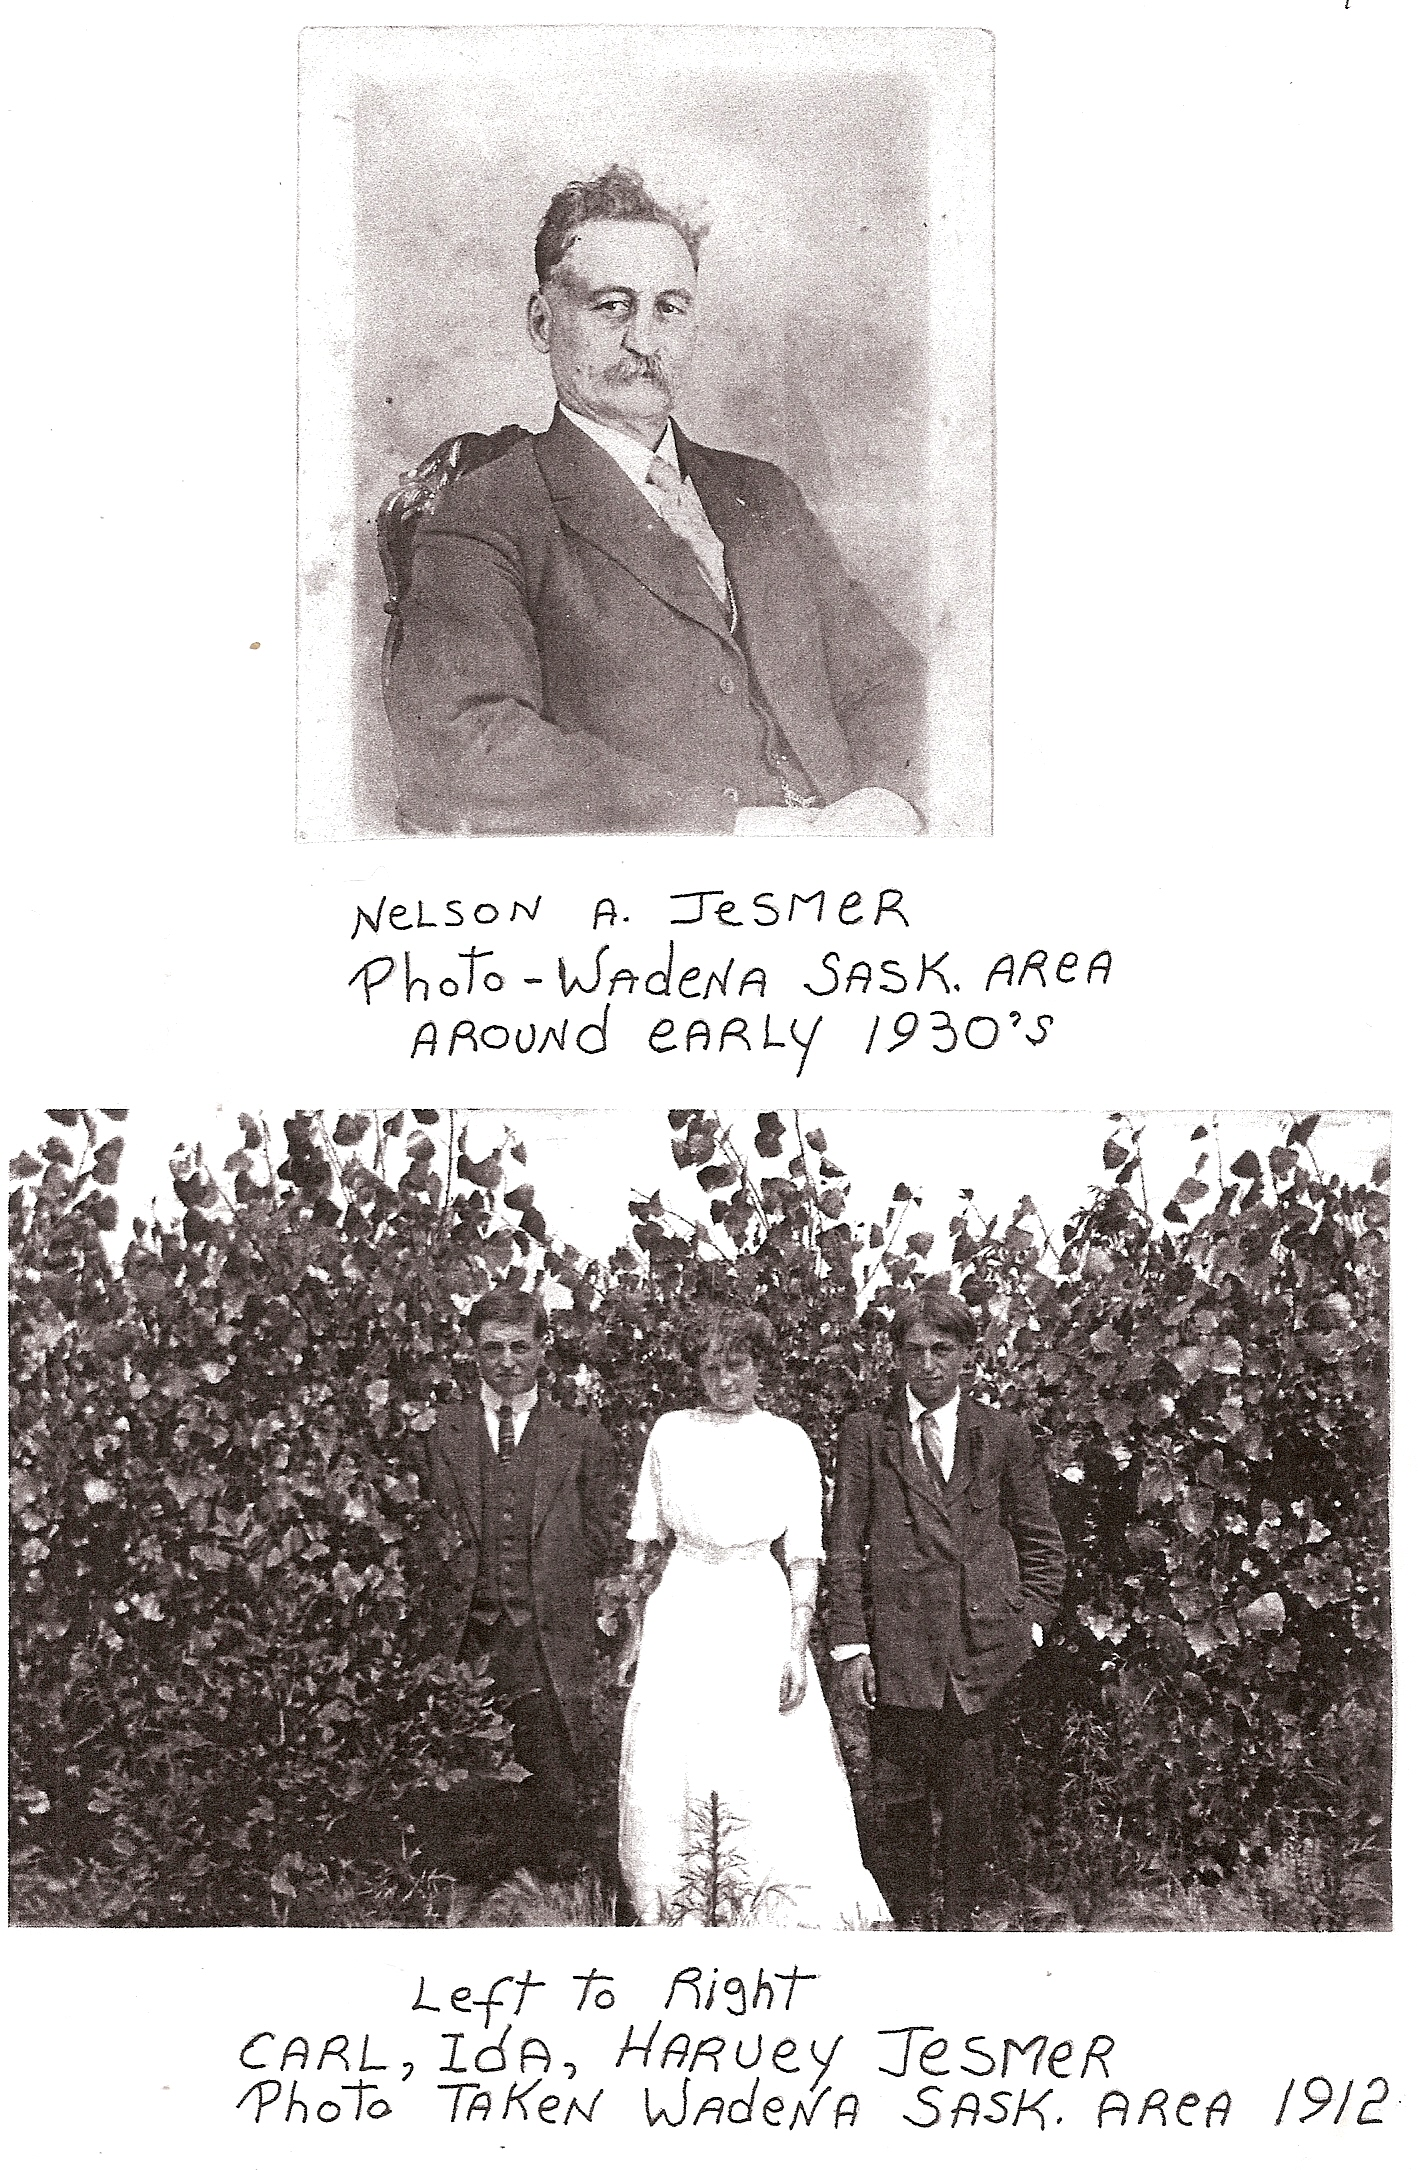 Nelson in 1930 and 3 kids in 1912